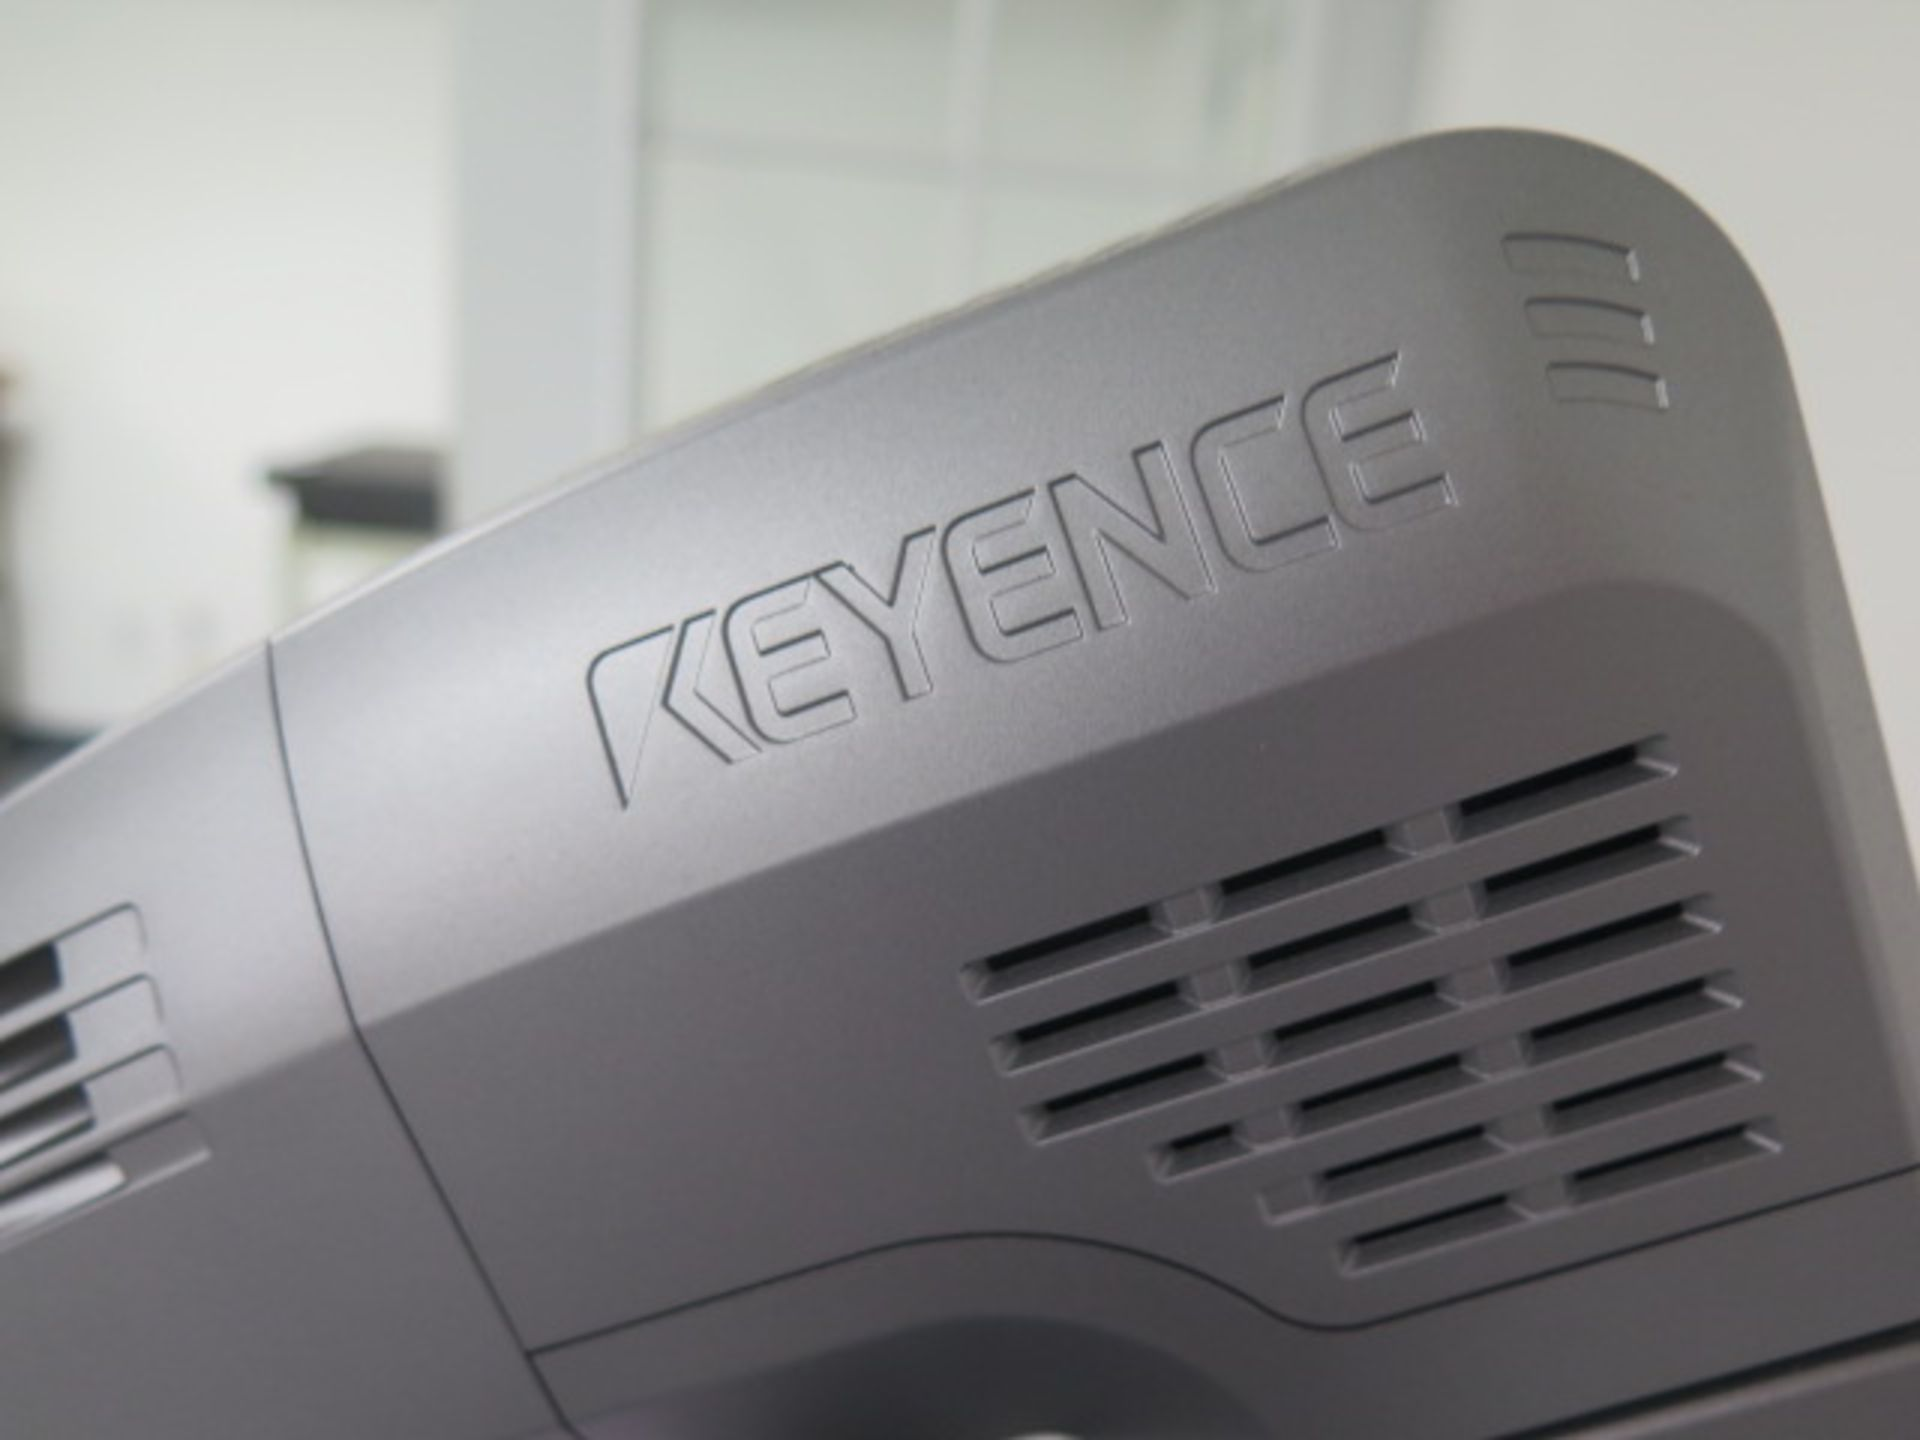 2020 Keyance XM-1200 Handheld Probe CMM s/n 4B910044 Camera and Single Probe System, SOLD AS IS - Image 21 of 23